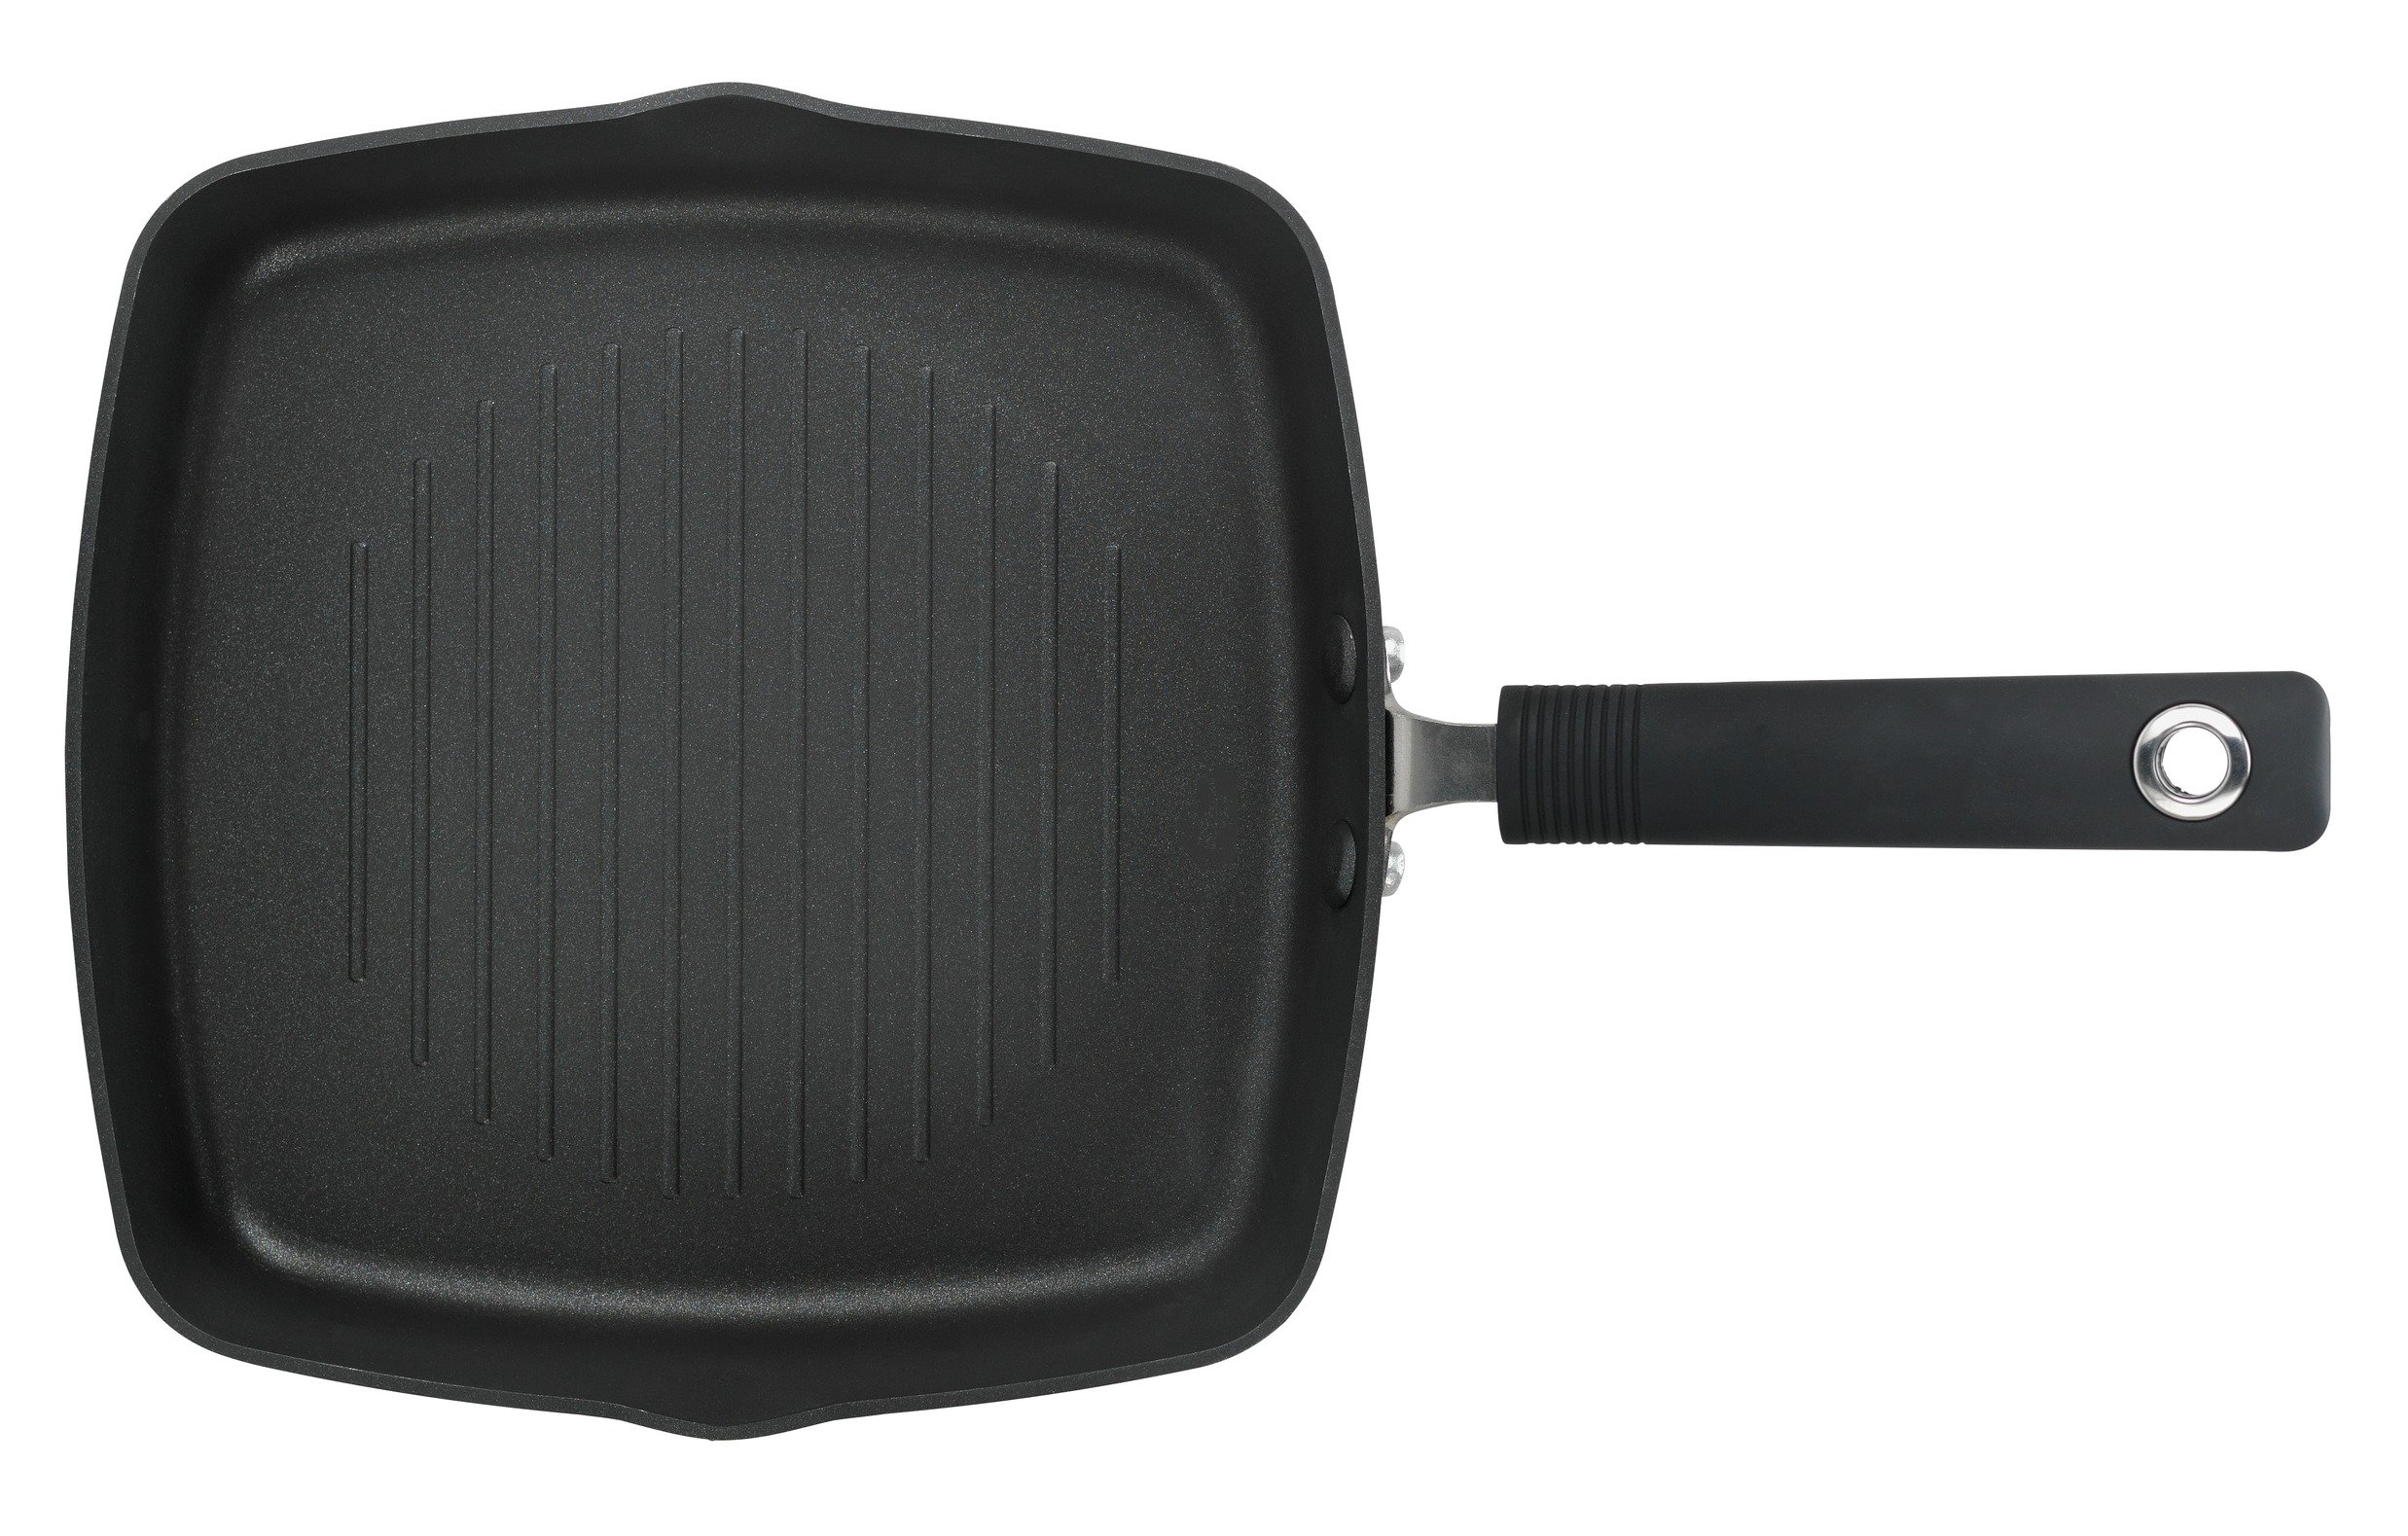 Sainsbury's Home Aluminium Griddle Pan